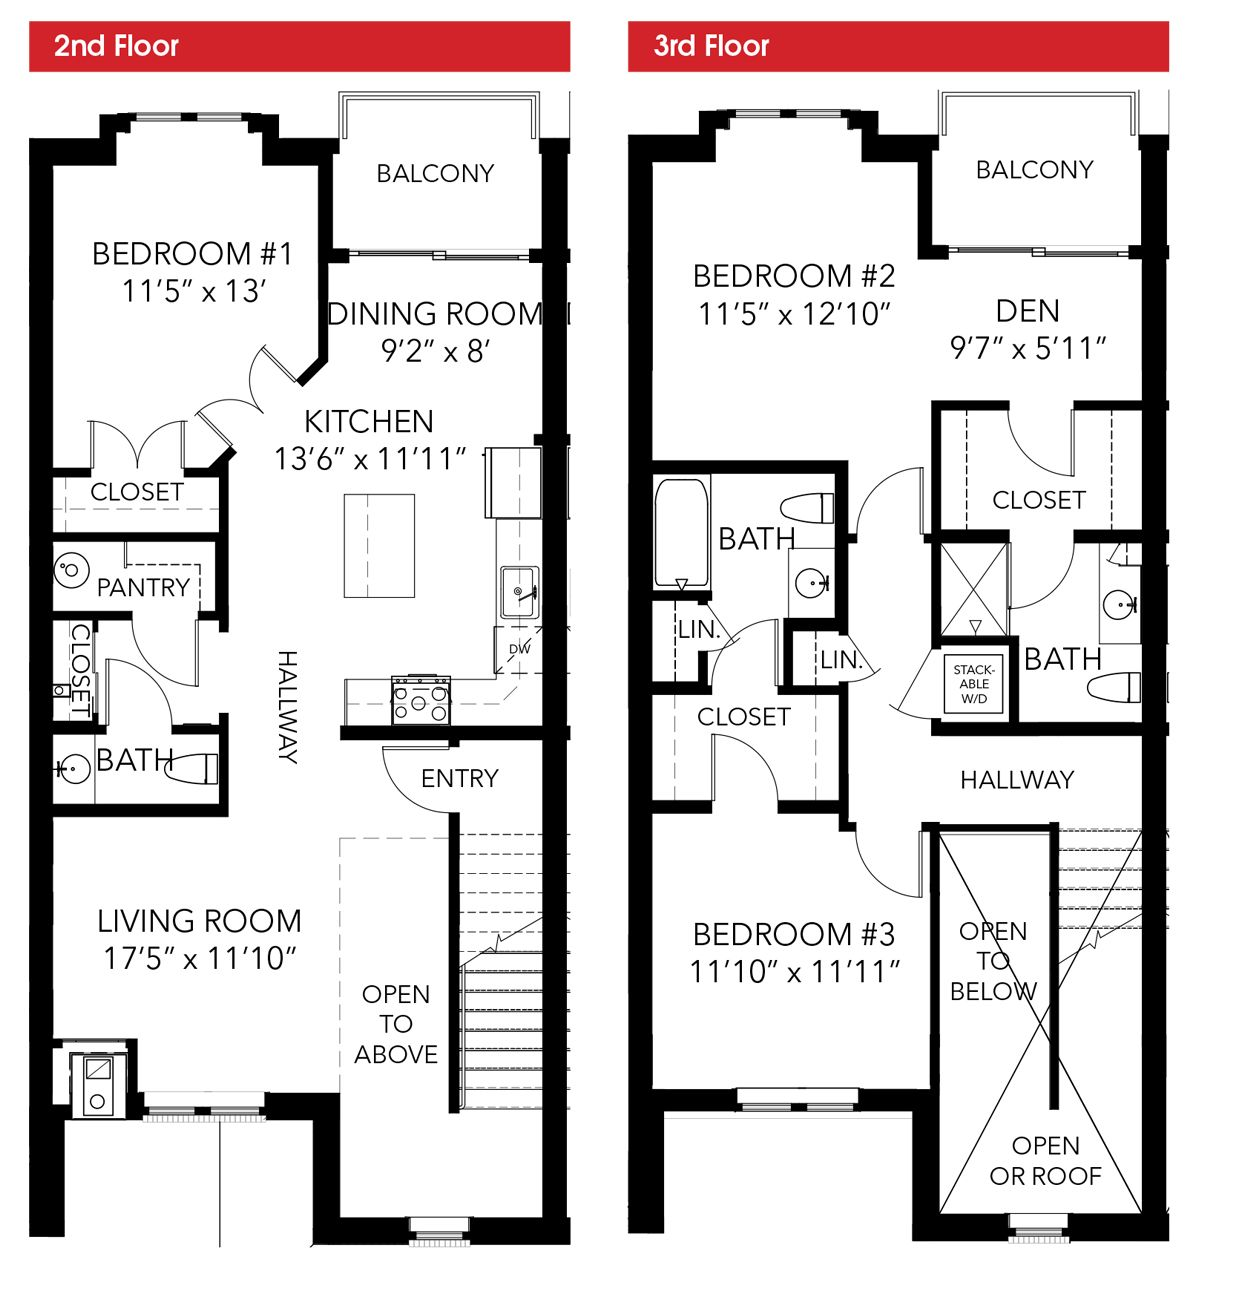 Oakbourne floor plan 3 bedroom 2 story leed certified for 2 bedroom 1 bath duplex floor plans